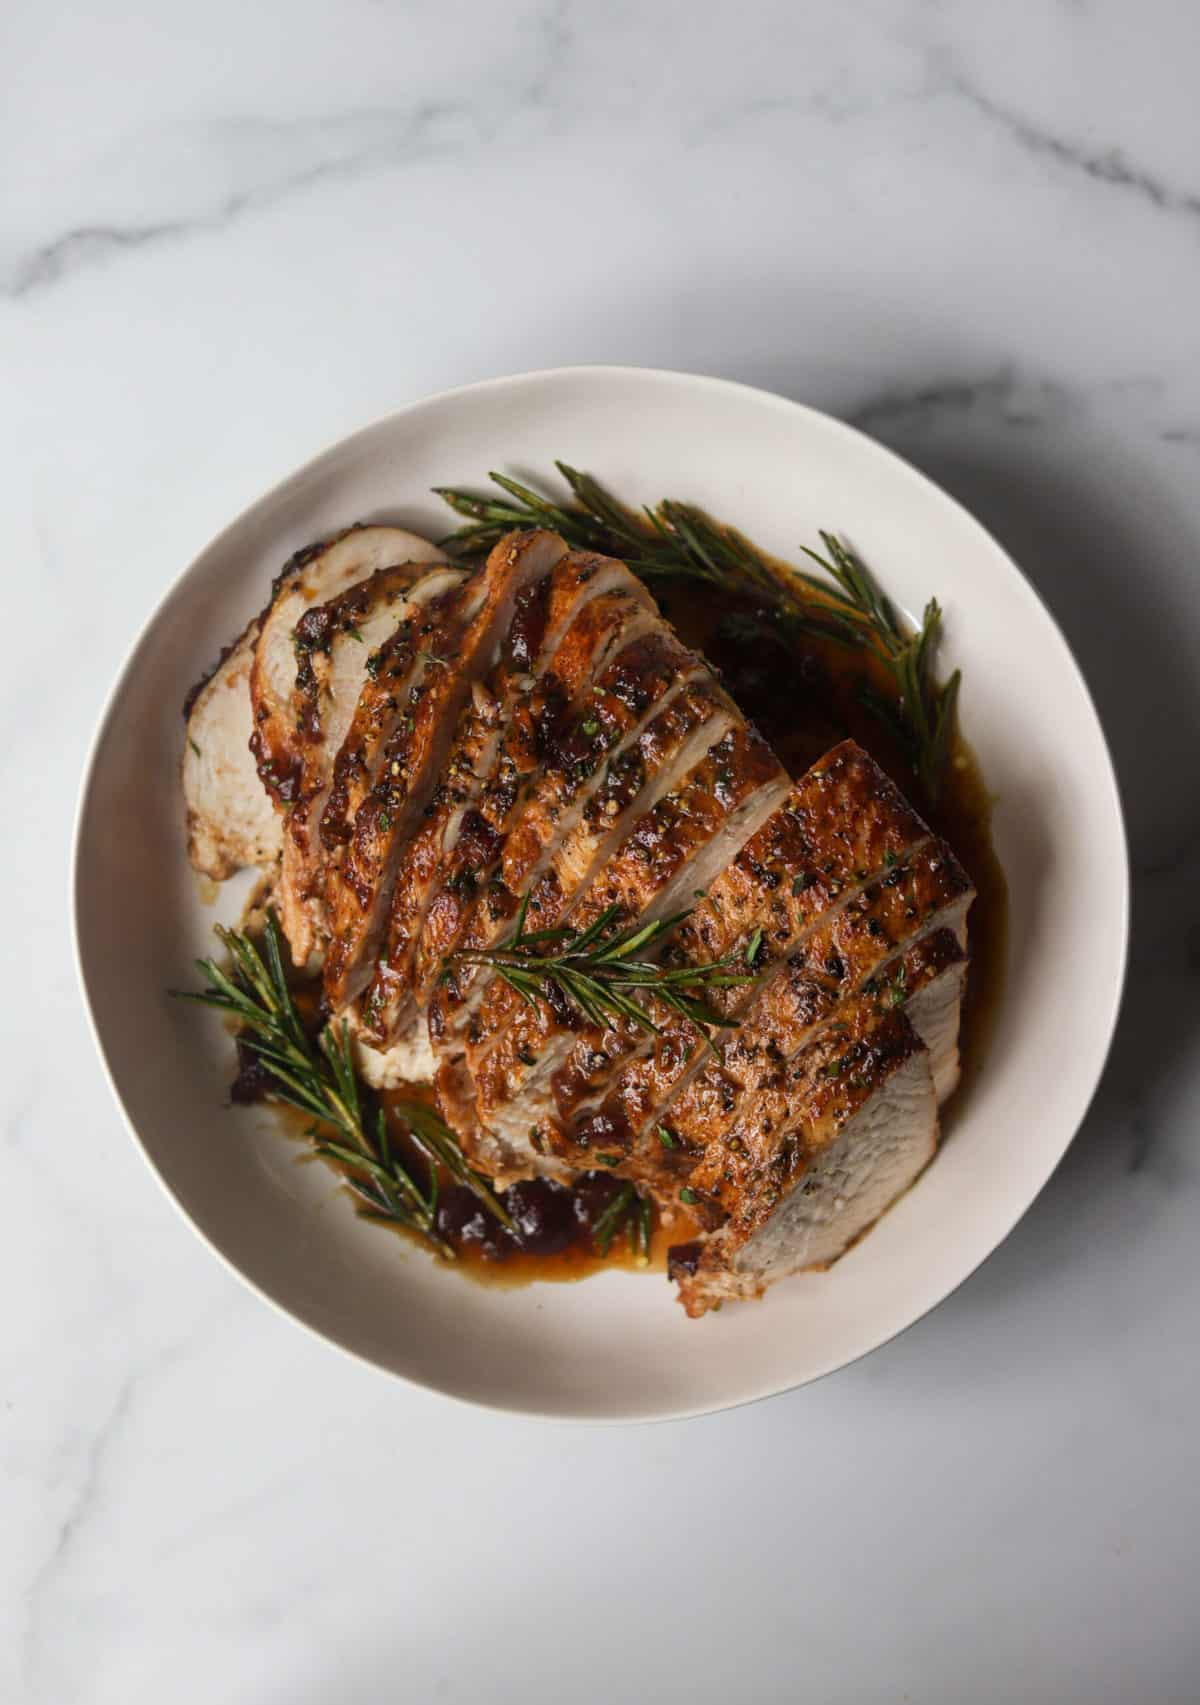 An overhead shot of a seared turkey breast with cranberry orange glaze and rosemary sprigs in a white bowl.